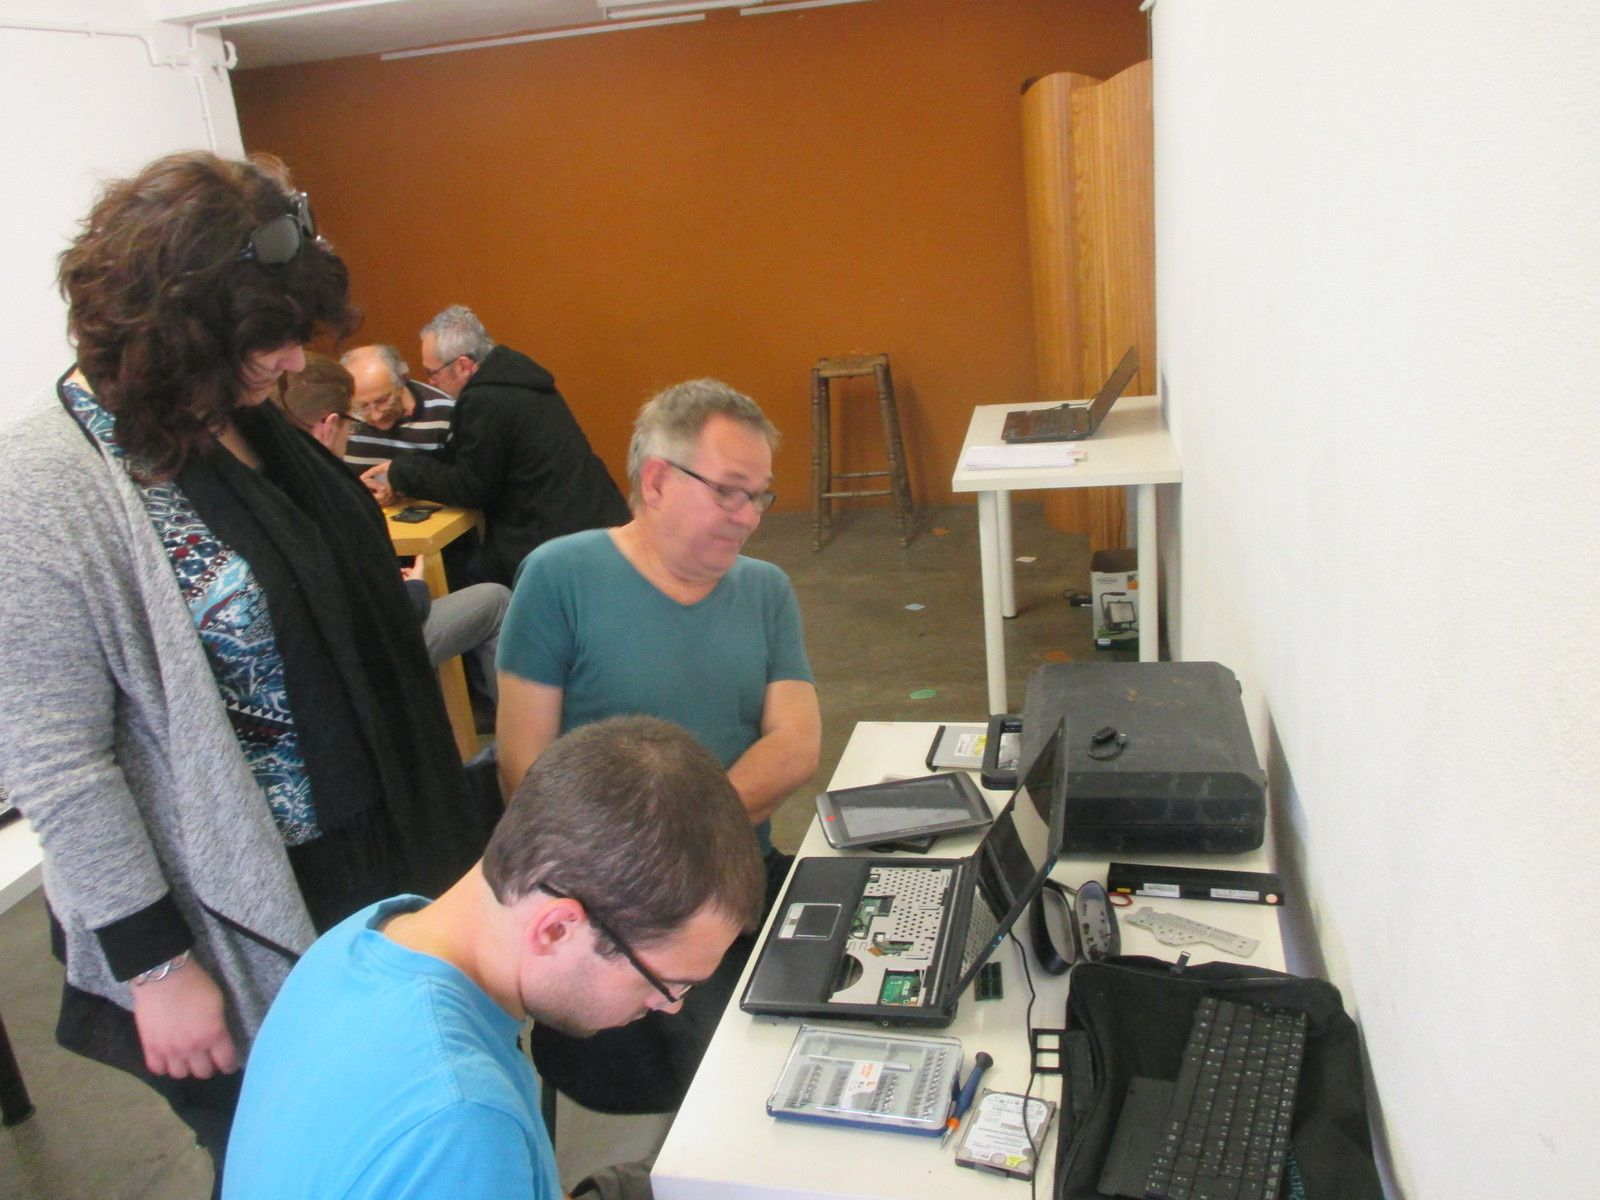 informatique repair café au 7-1